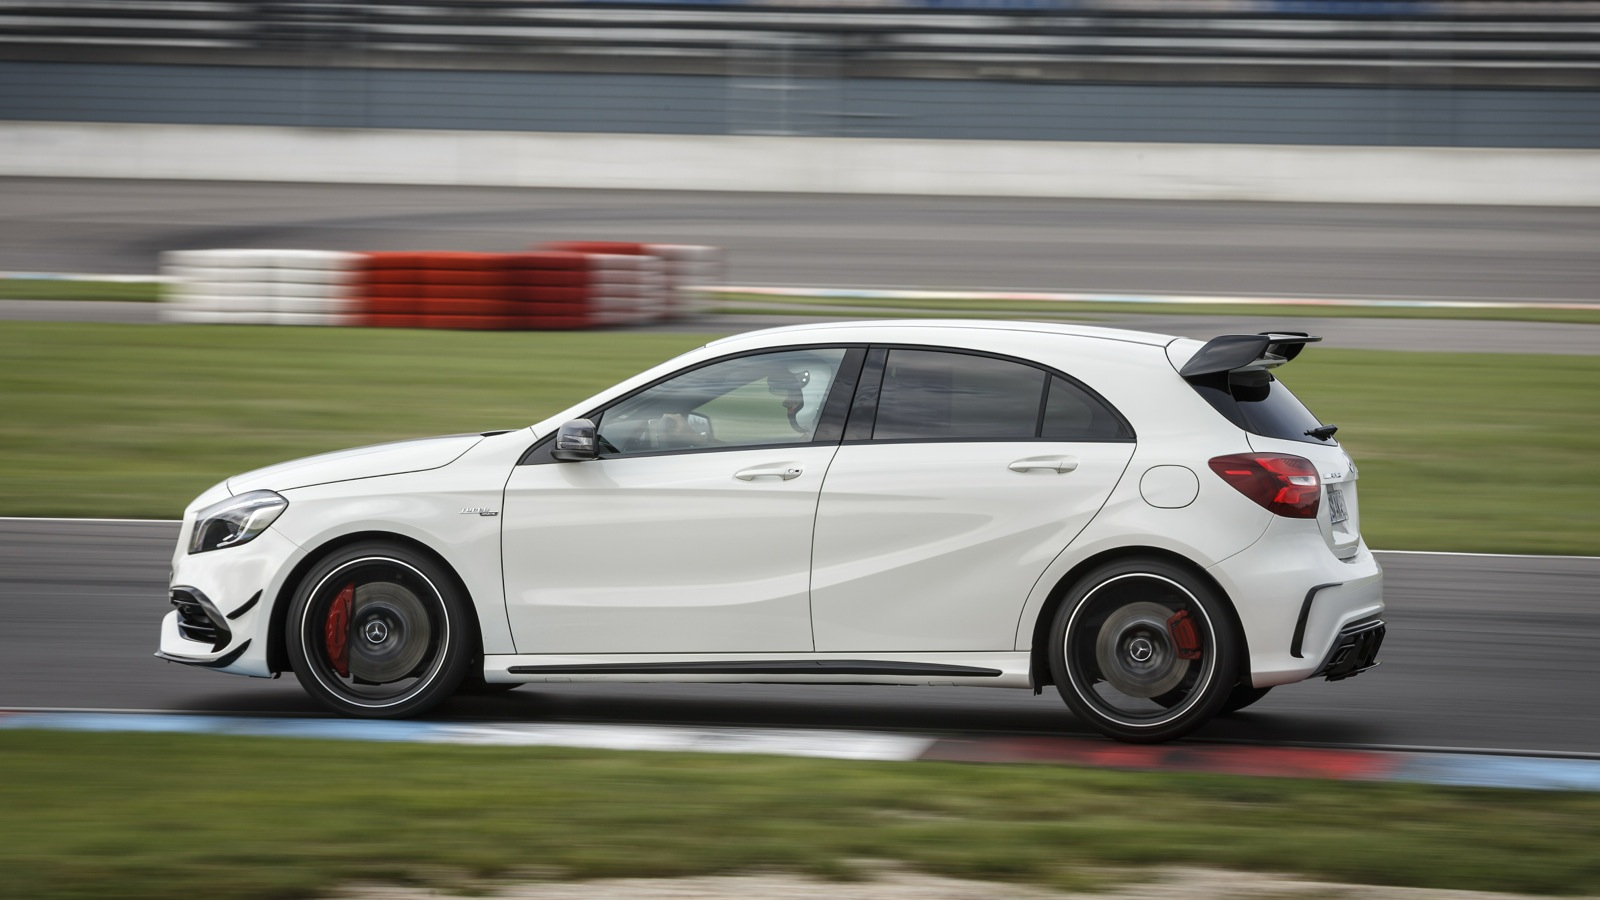 2016 mercedes amg a45 4matic review track test photos for Mercedes benz a 45 amg 4matic